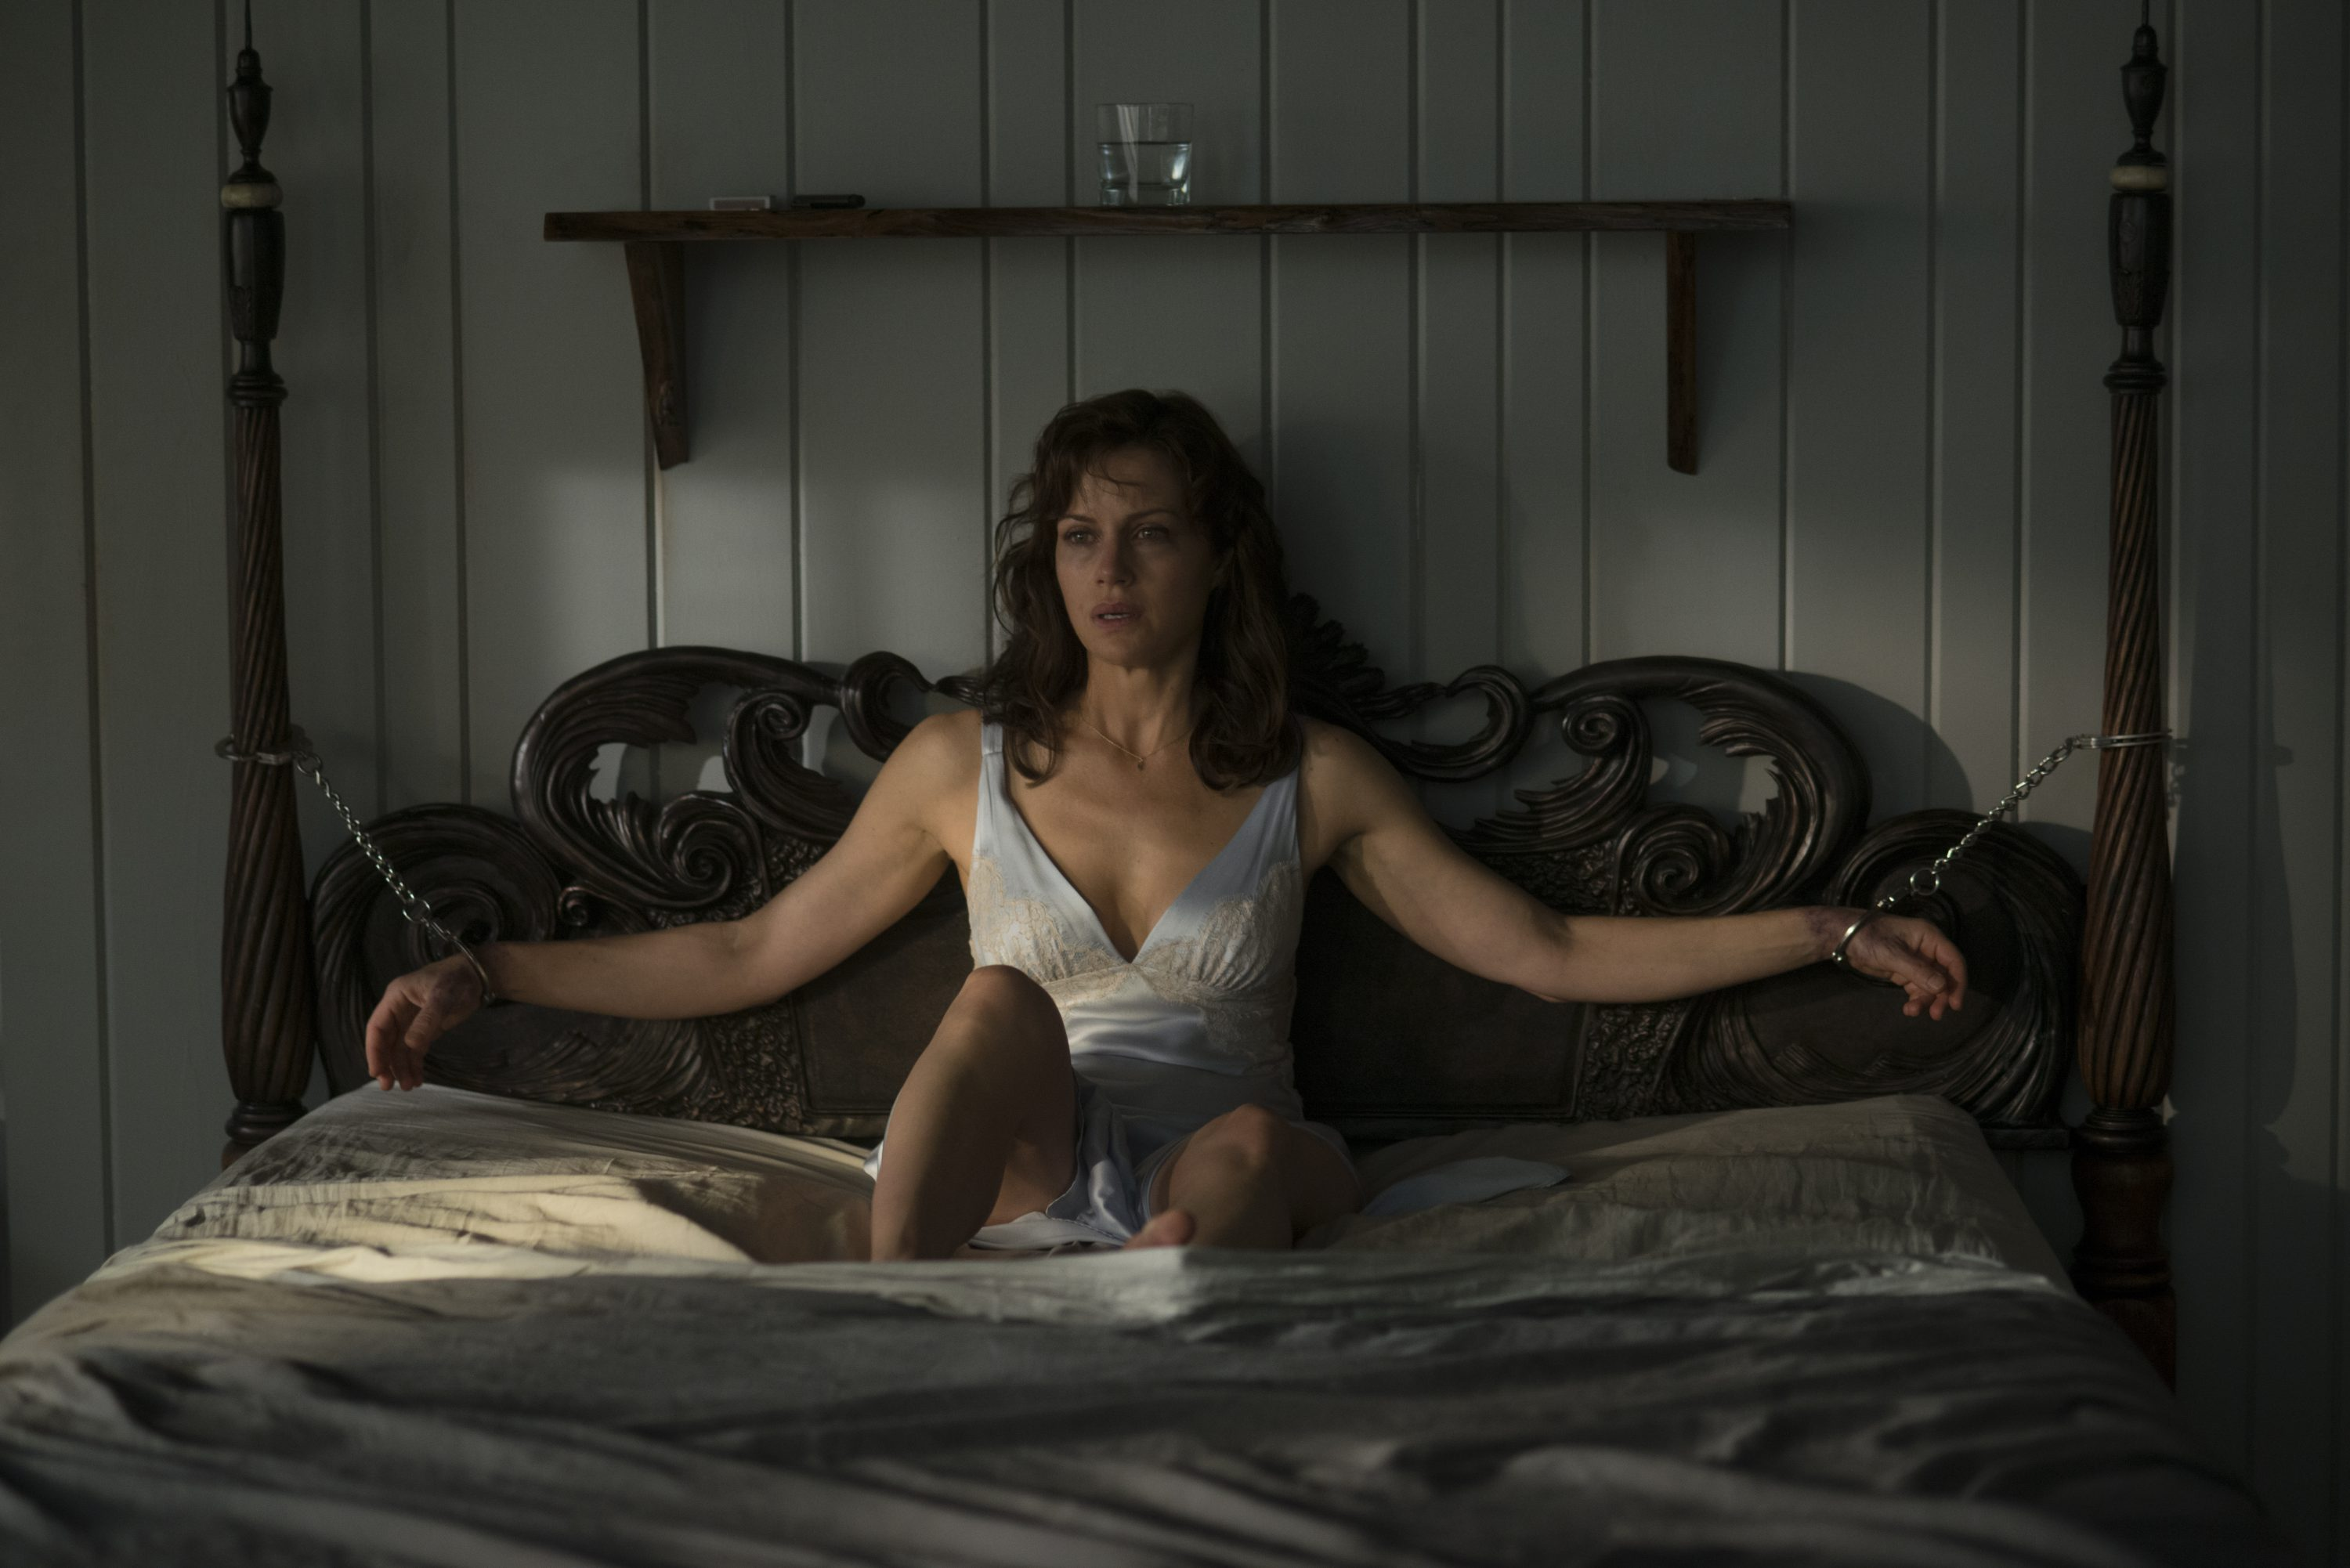 geraldsgame unit 01890 r e1507237252620 Winning Geralds Game: Director Mike Flanagan on Stephen King and Adapting the Impossible